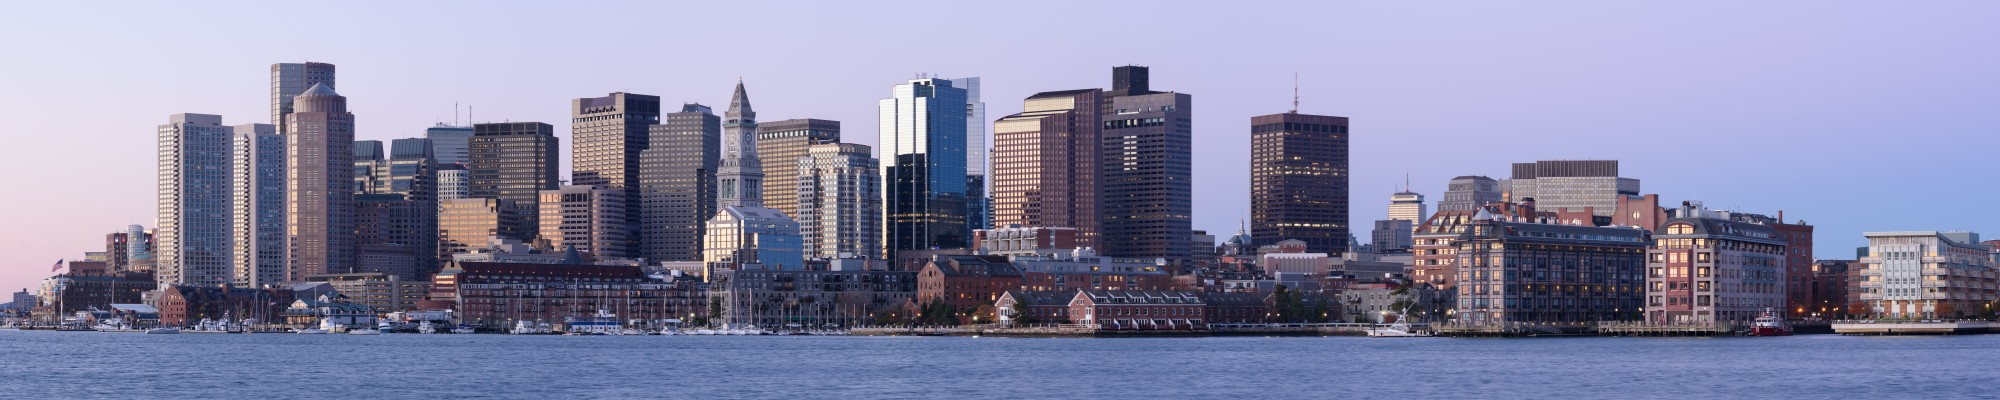 Boston skyline from East Boston November 2016 panorama 2